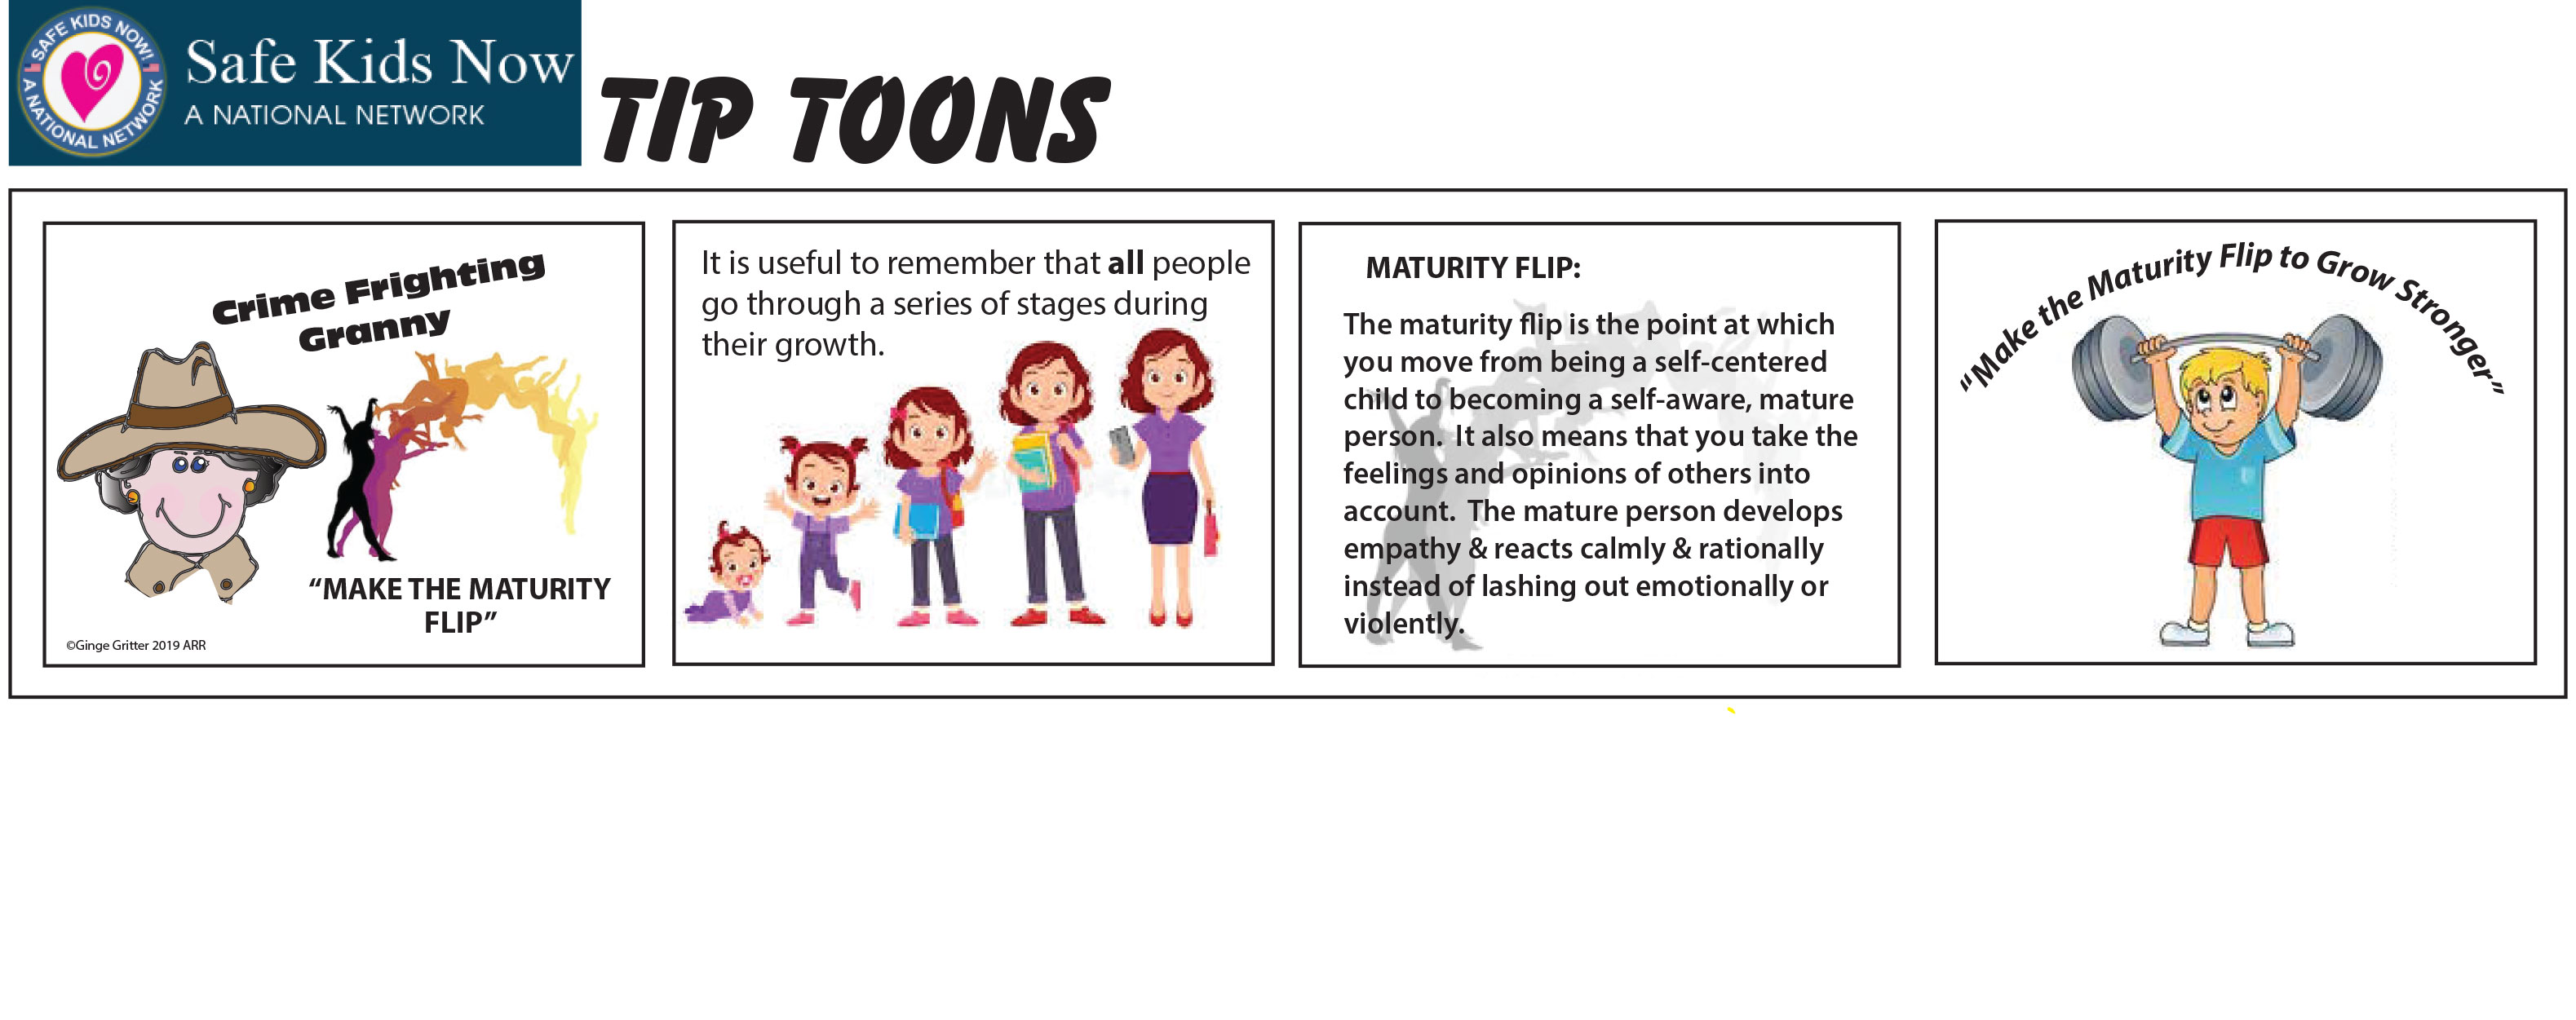 The Maturity Flip - Safe Kids Now Tip Toons